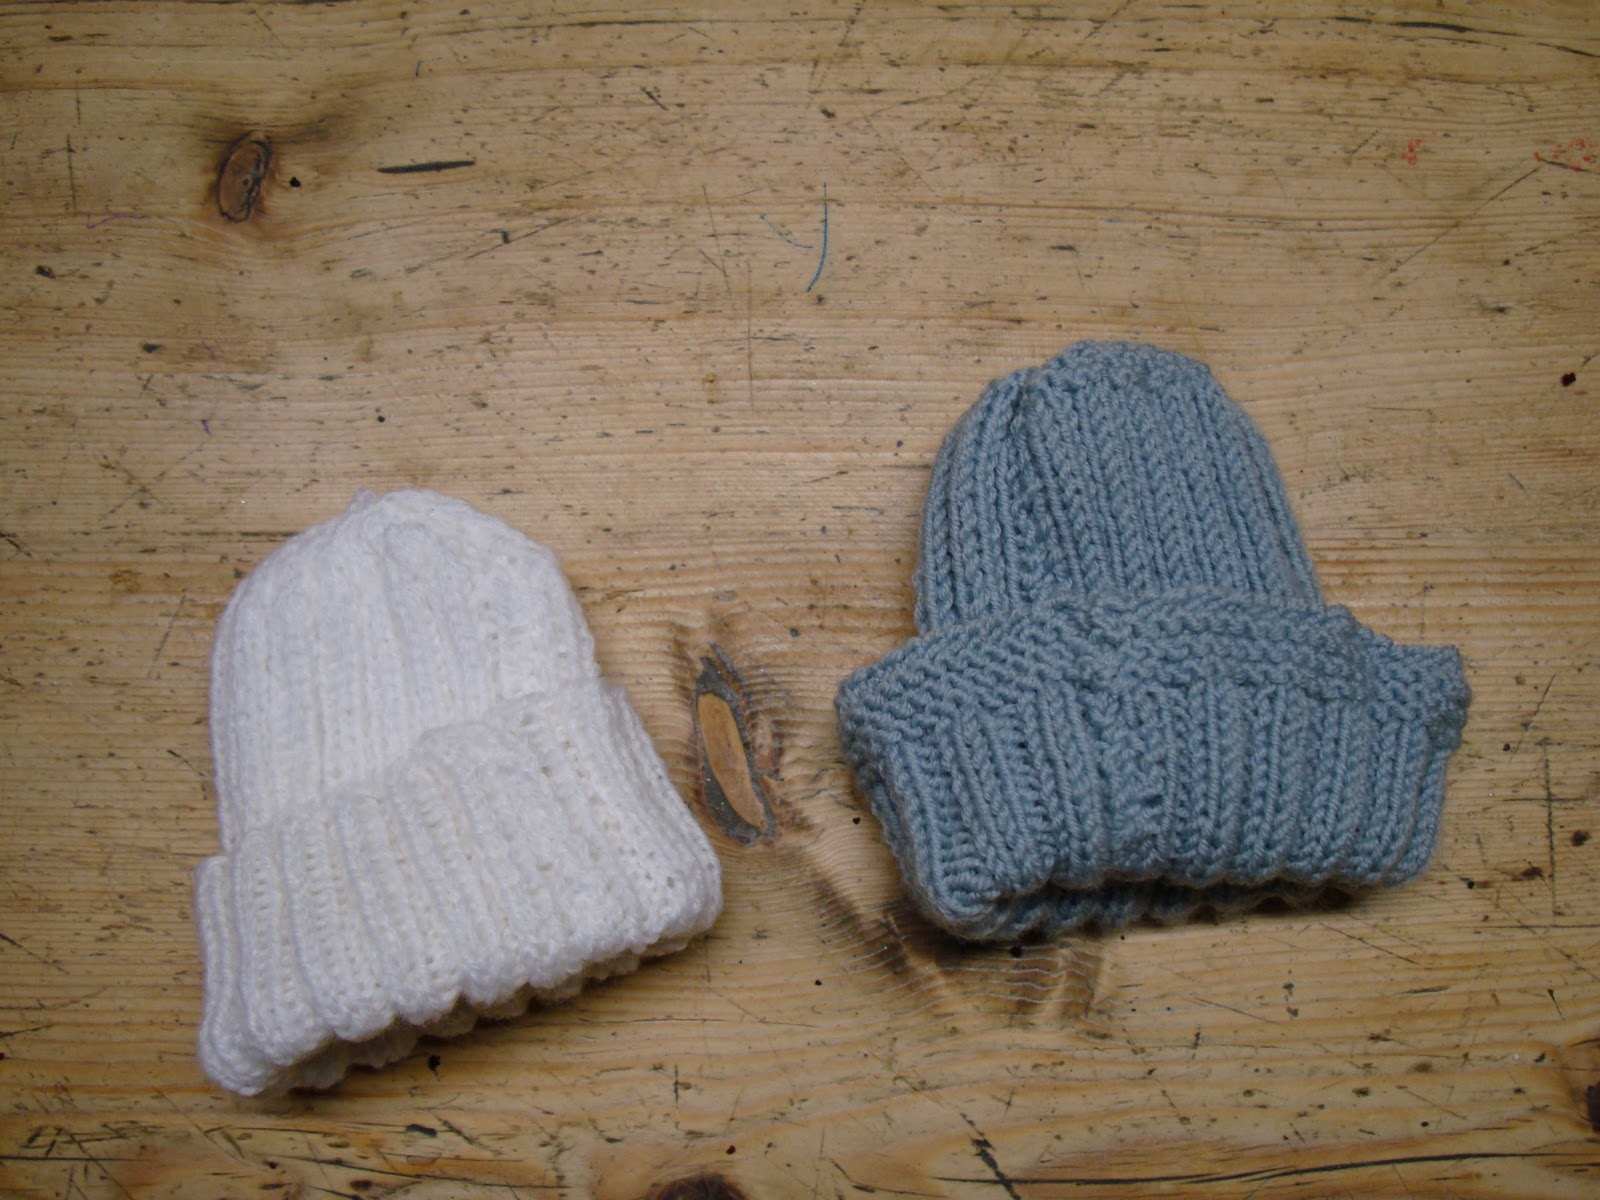 a71d86824d2 Knit a hat for a premature baby - Knit For Peace